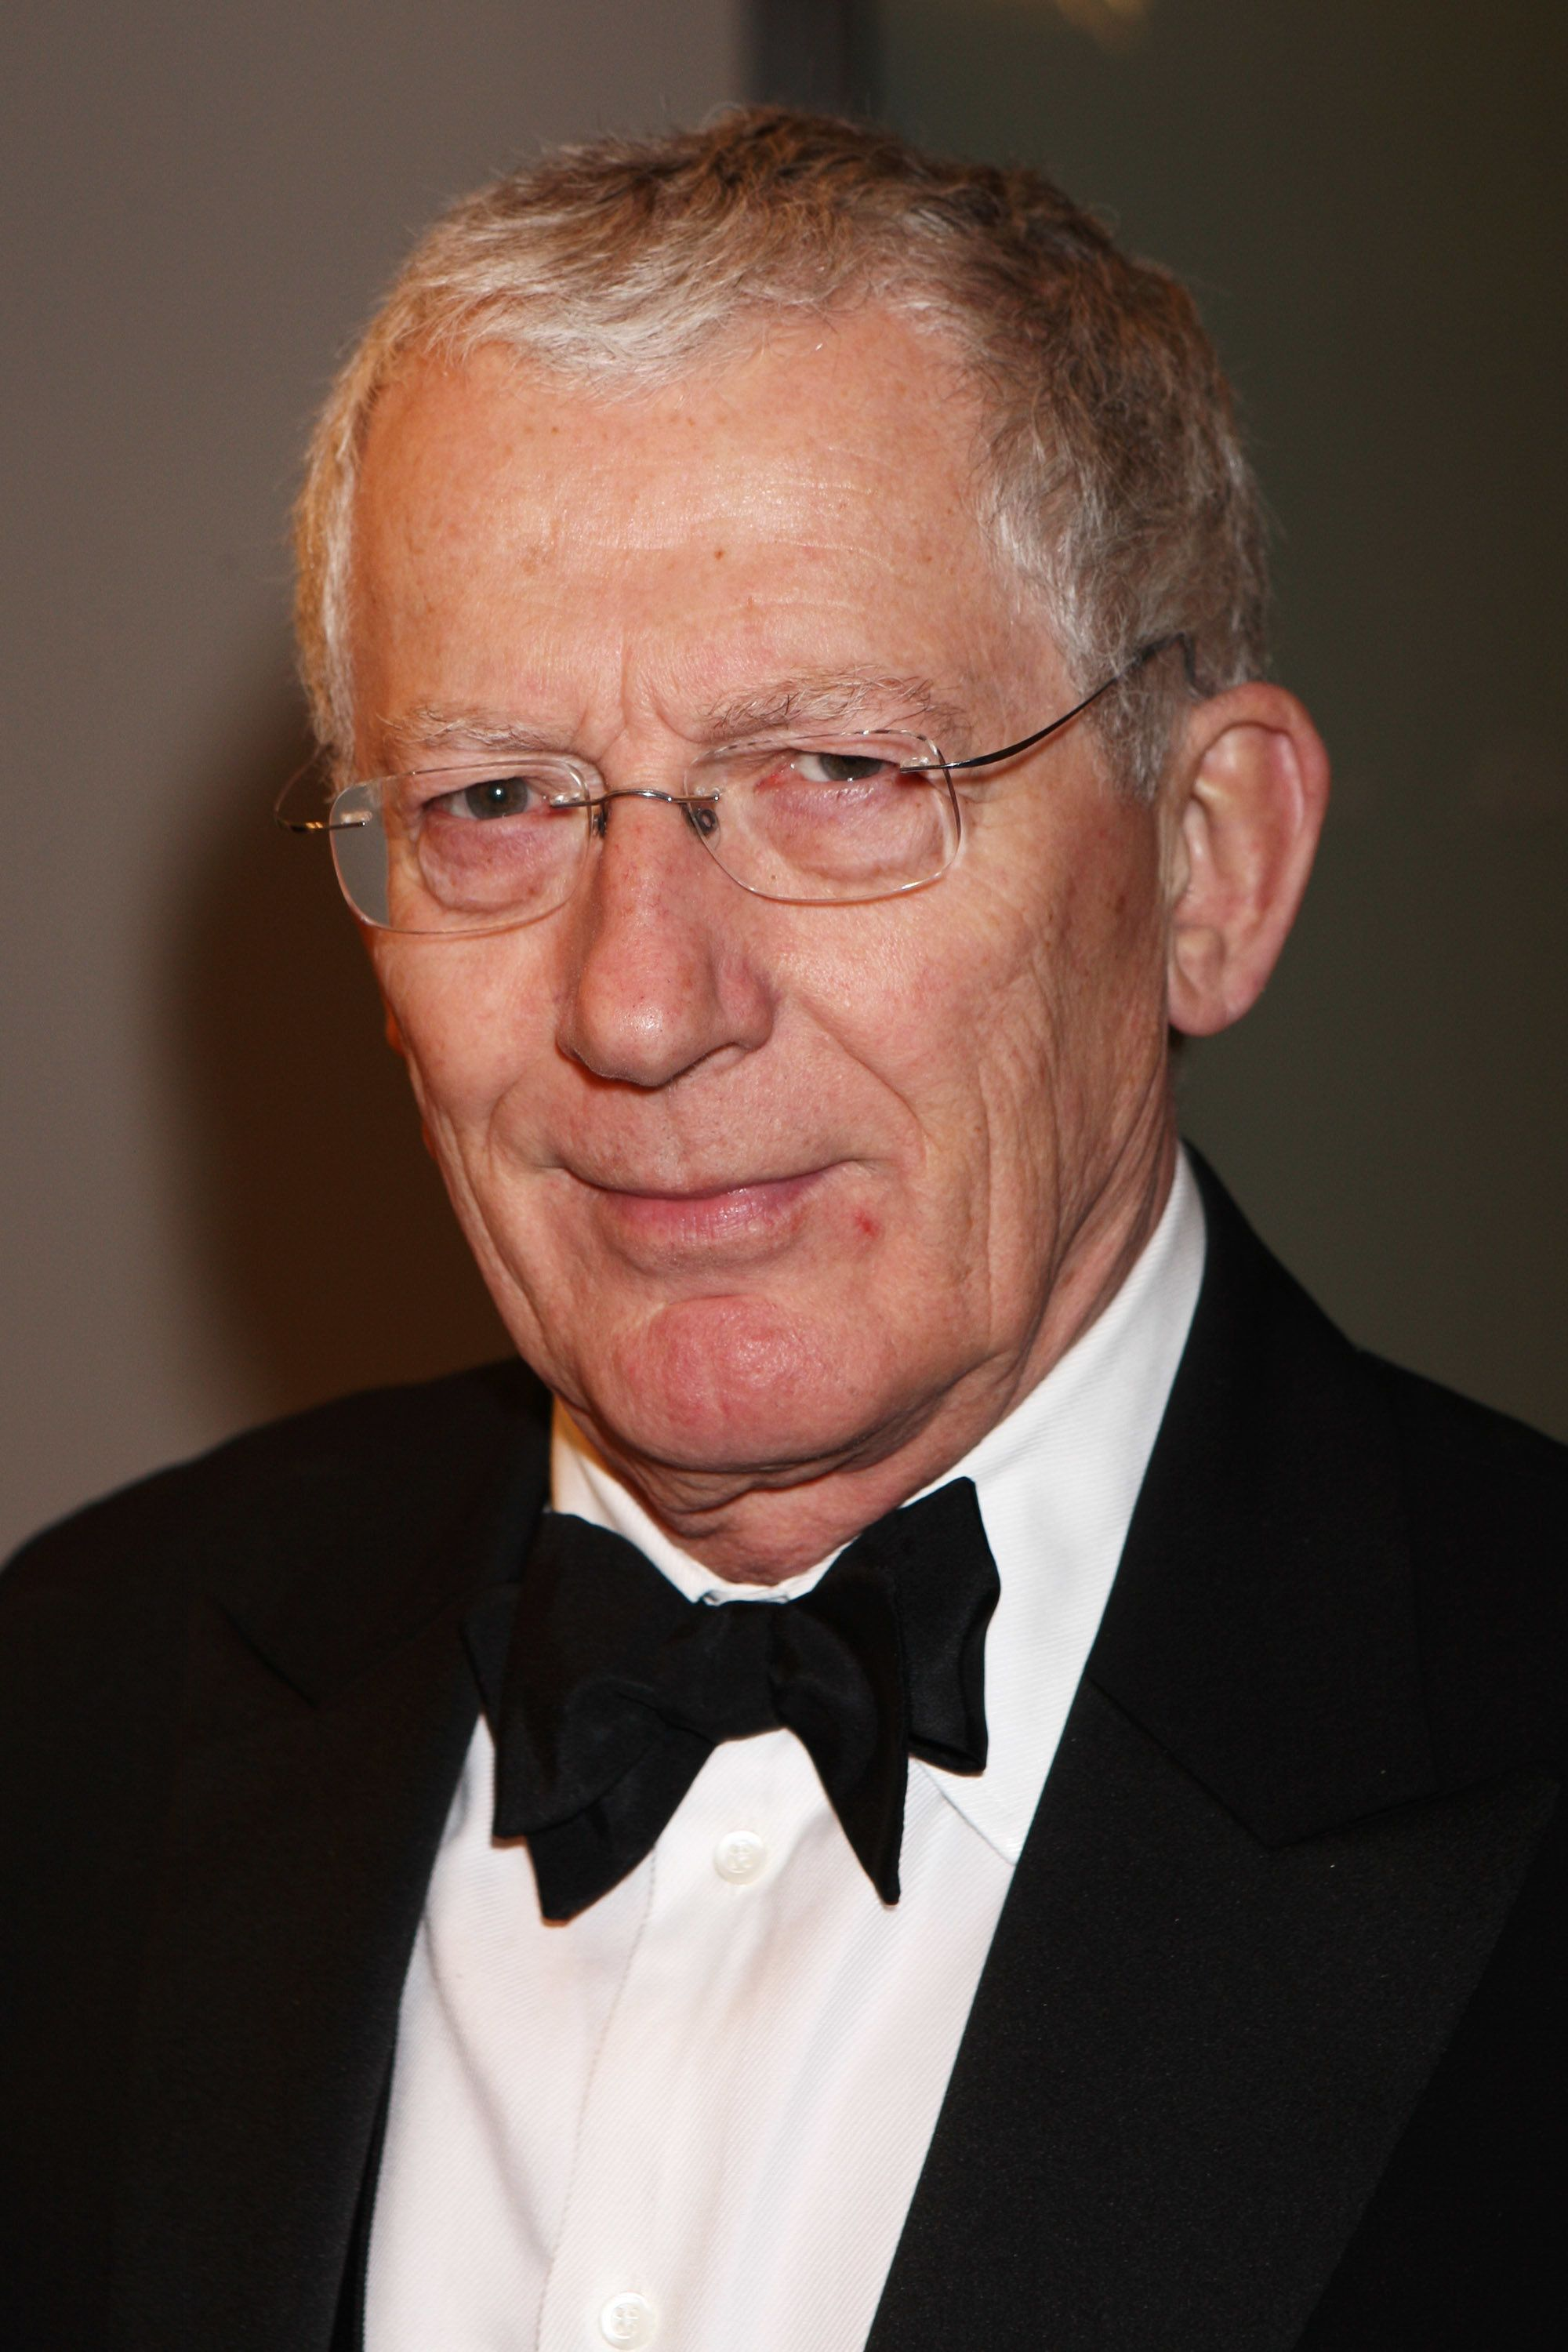 Nick Hewer Says His Ten Years On 'The Apprentice' Was 'A Nightmare'